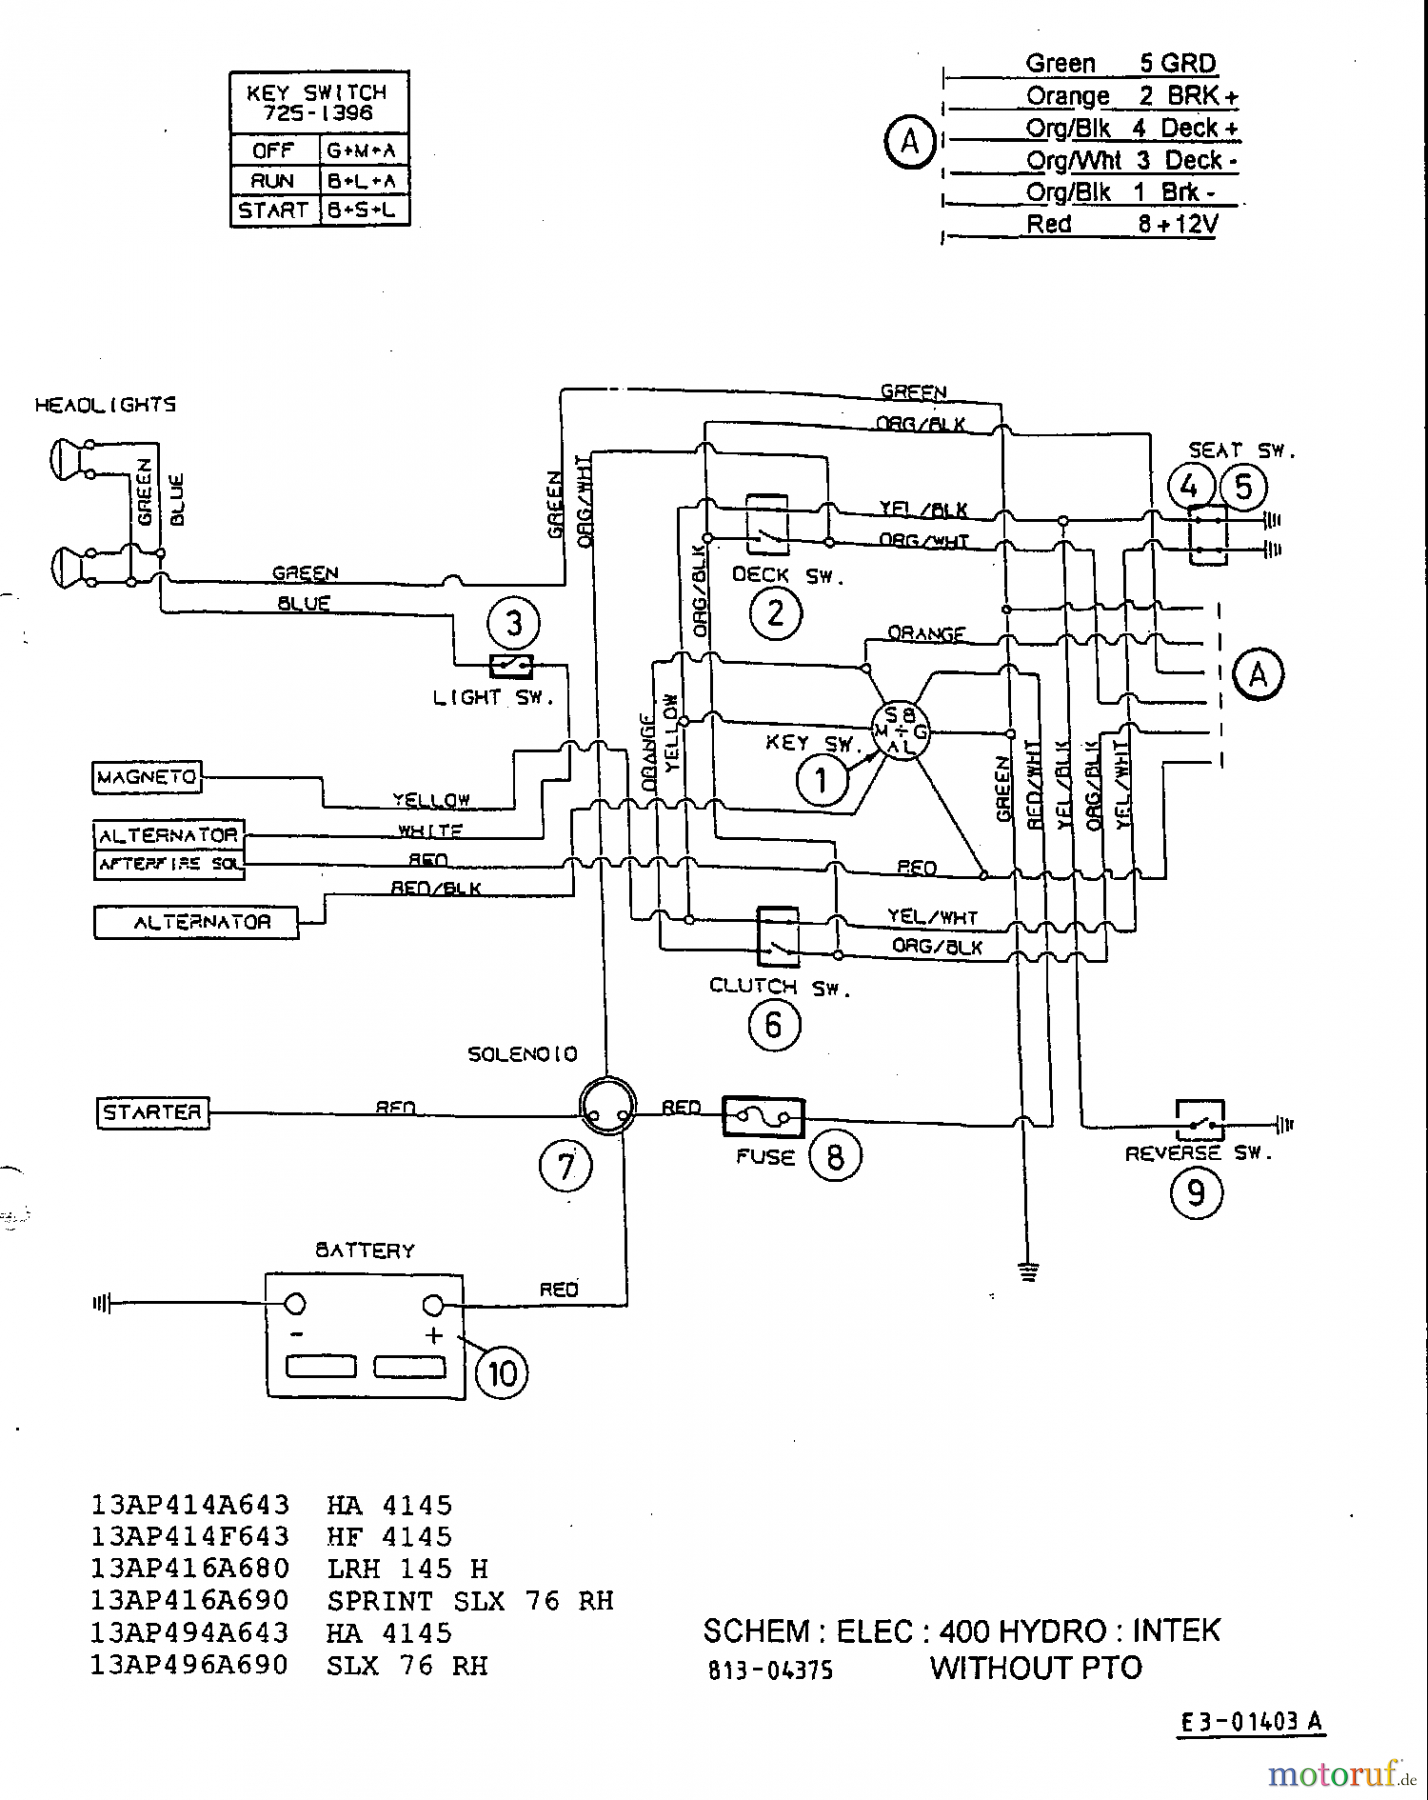 Mtd Lawn Mower Wiring Diagram | Wiring Diagram - Riding Mower Wiring Diagram